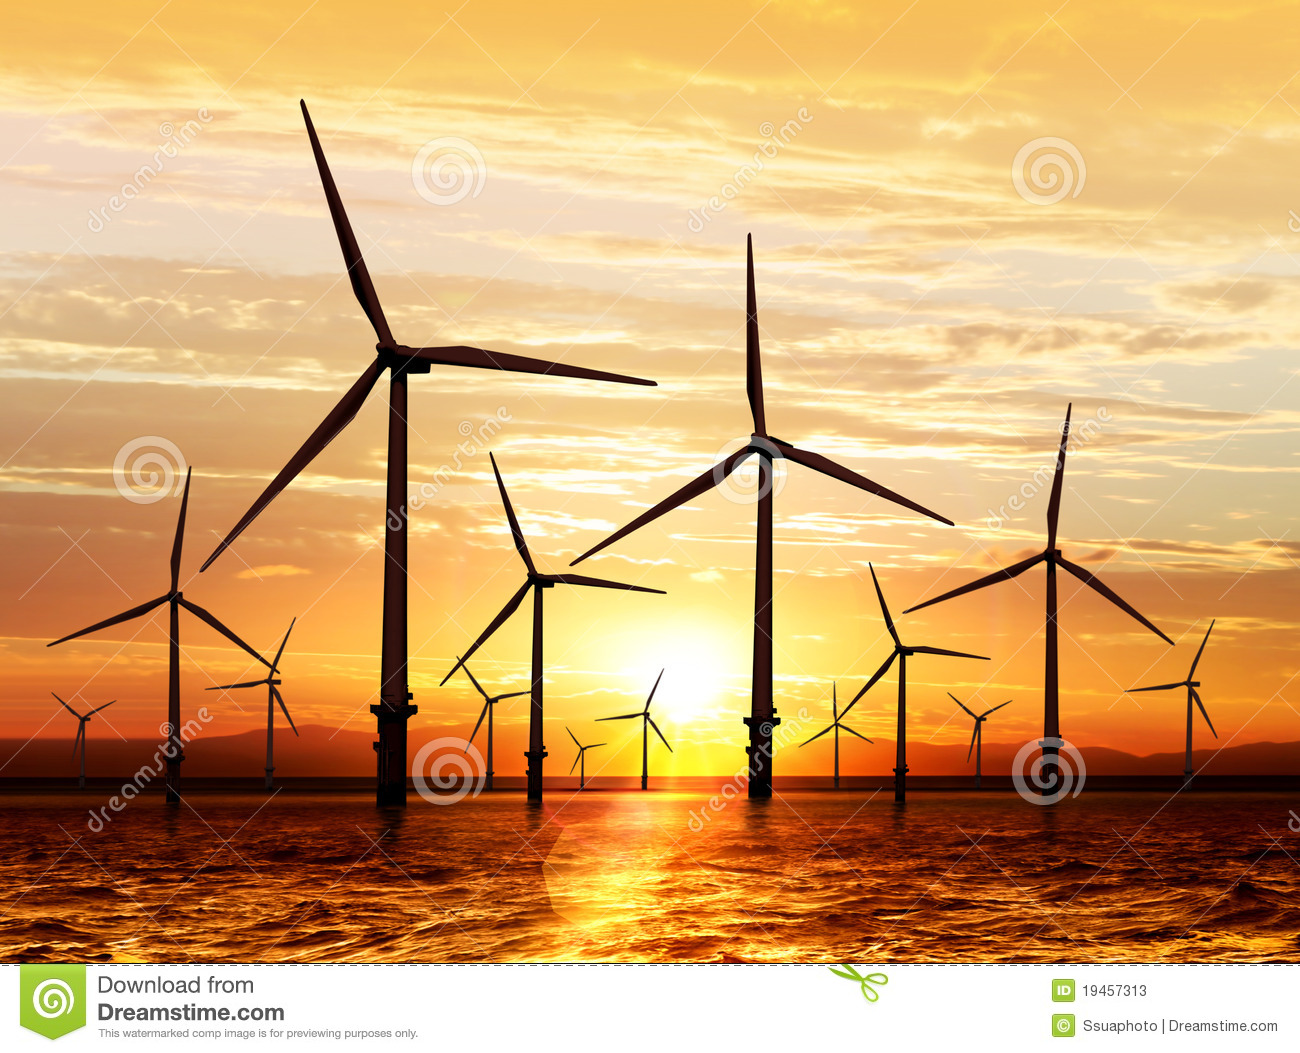 Wind Turbine On Sunset Stock Photos - Image: 19457313